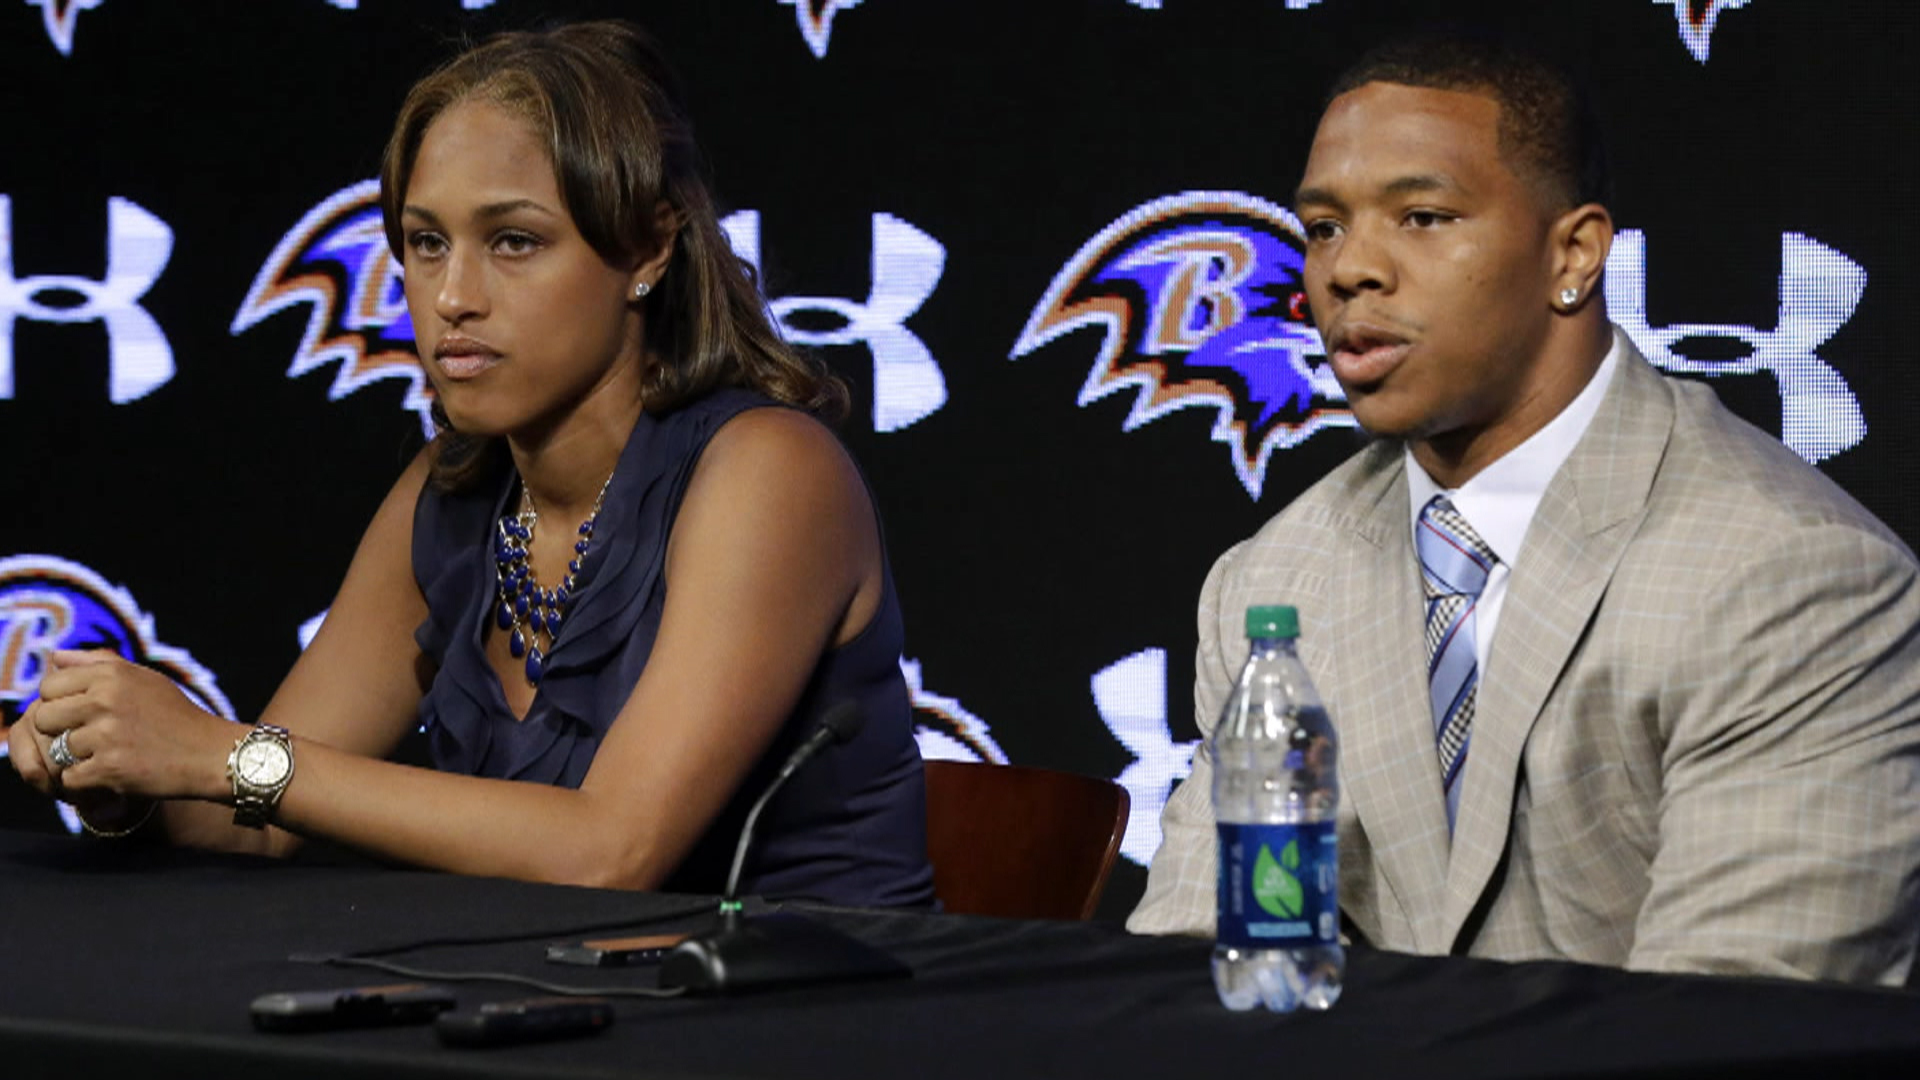 ray rice domestic violence Baltimore ravens running back ray rice has received a two-game suspension from the nfl following his off-season arrest for domestic violence.